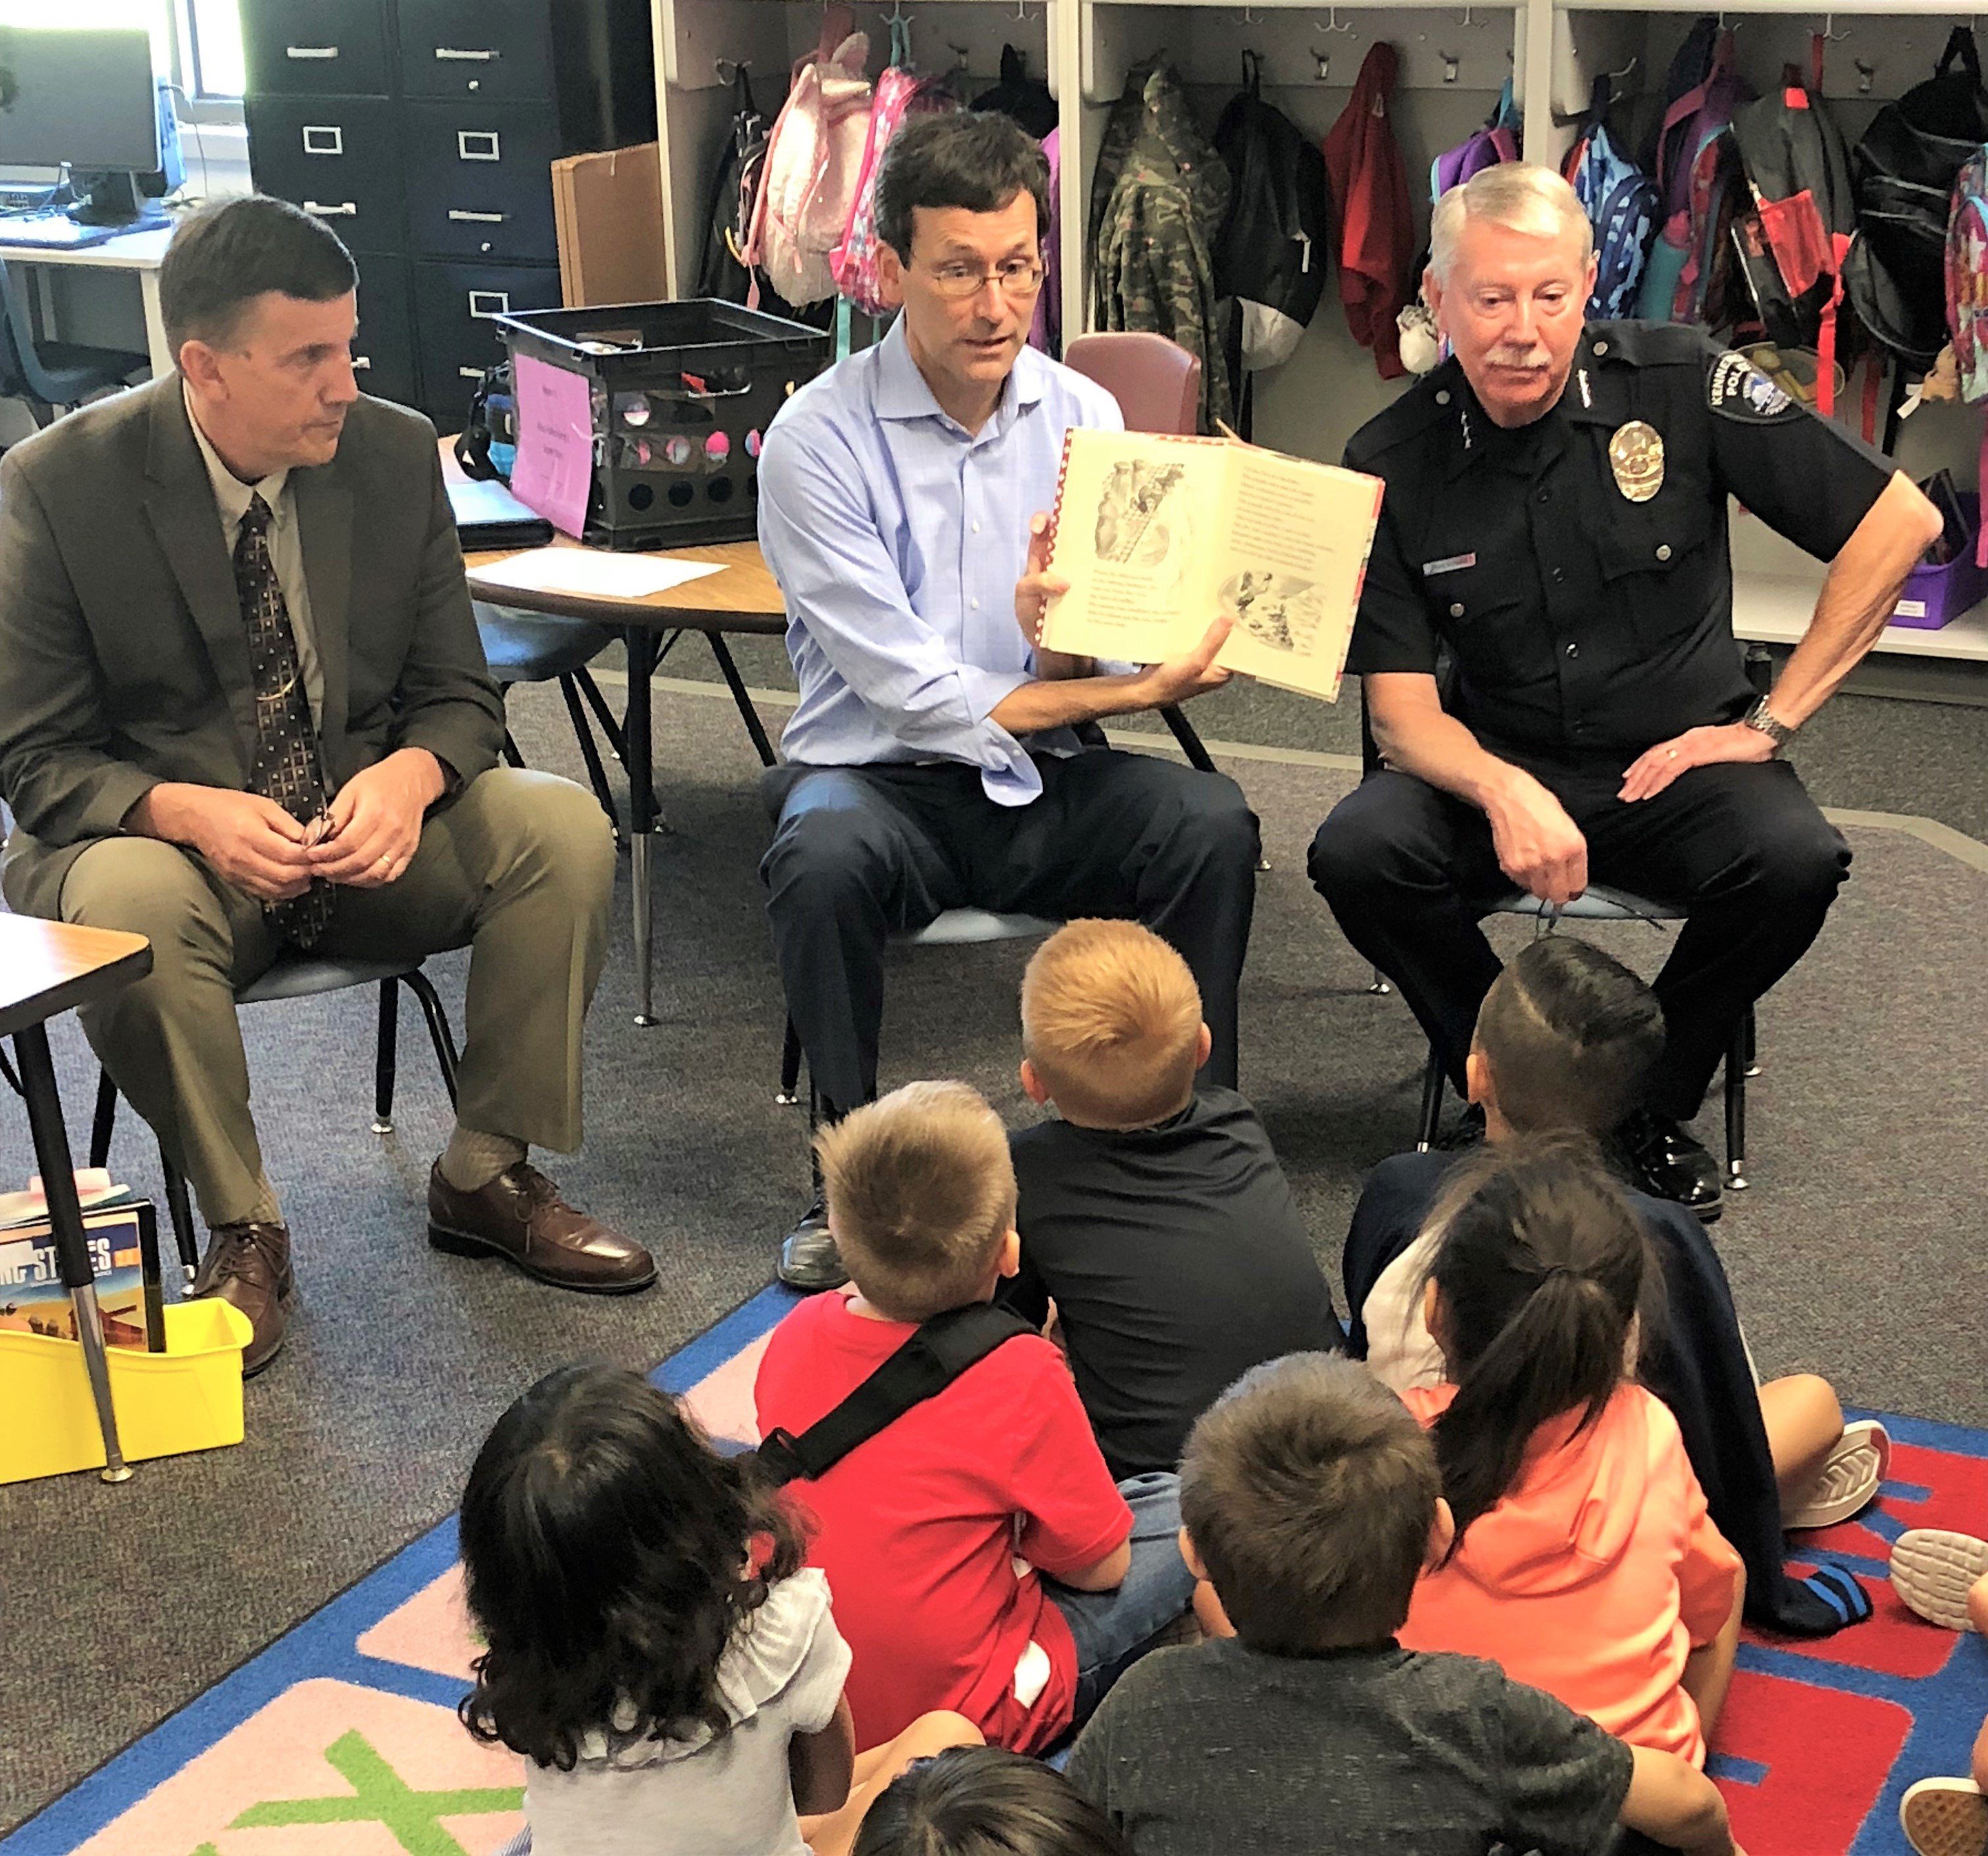 Attorney General Ferguson and other officials reading book to children